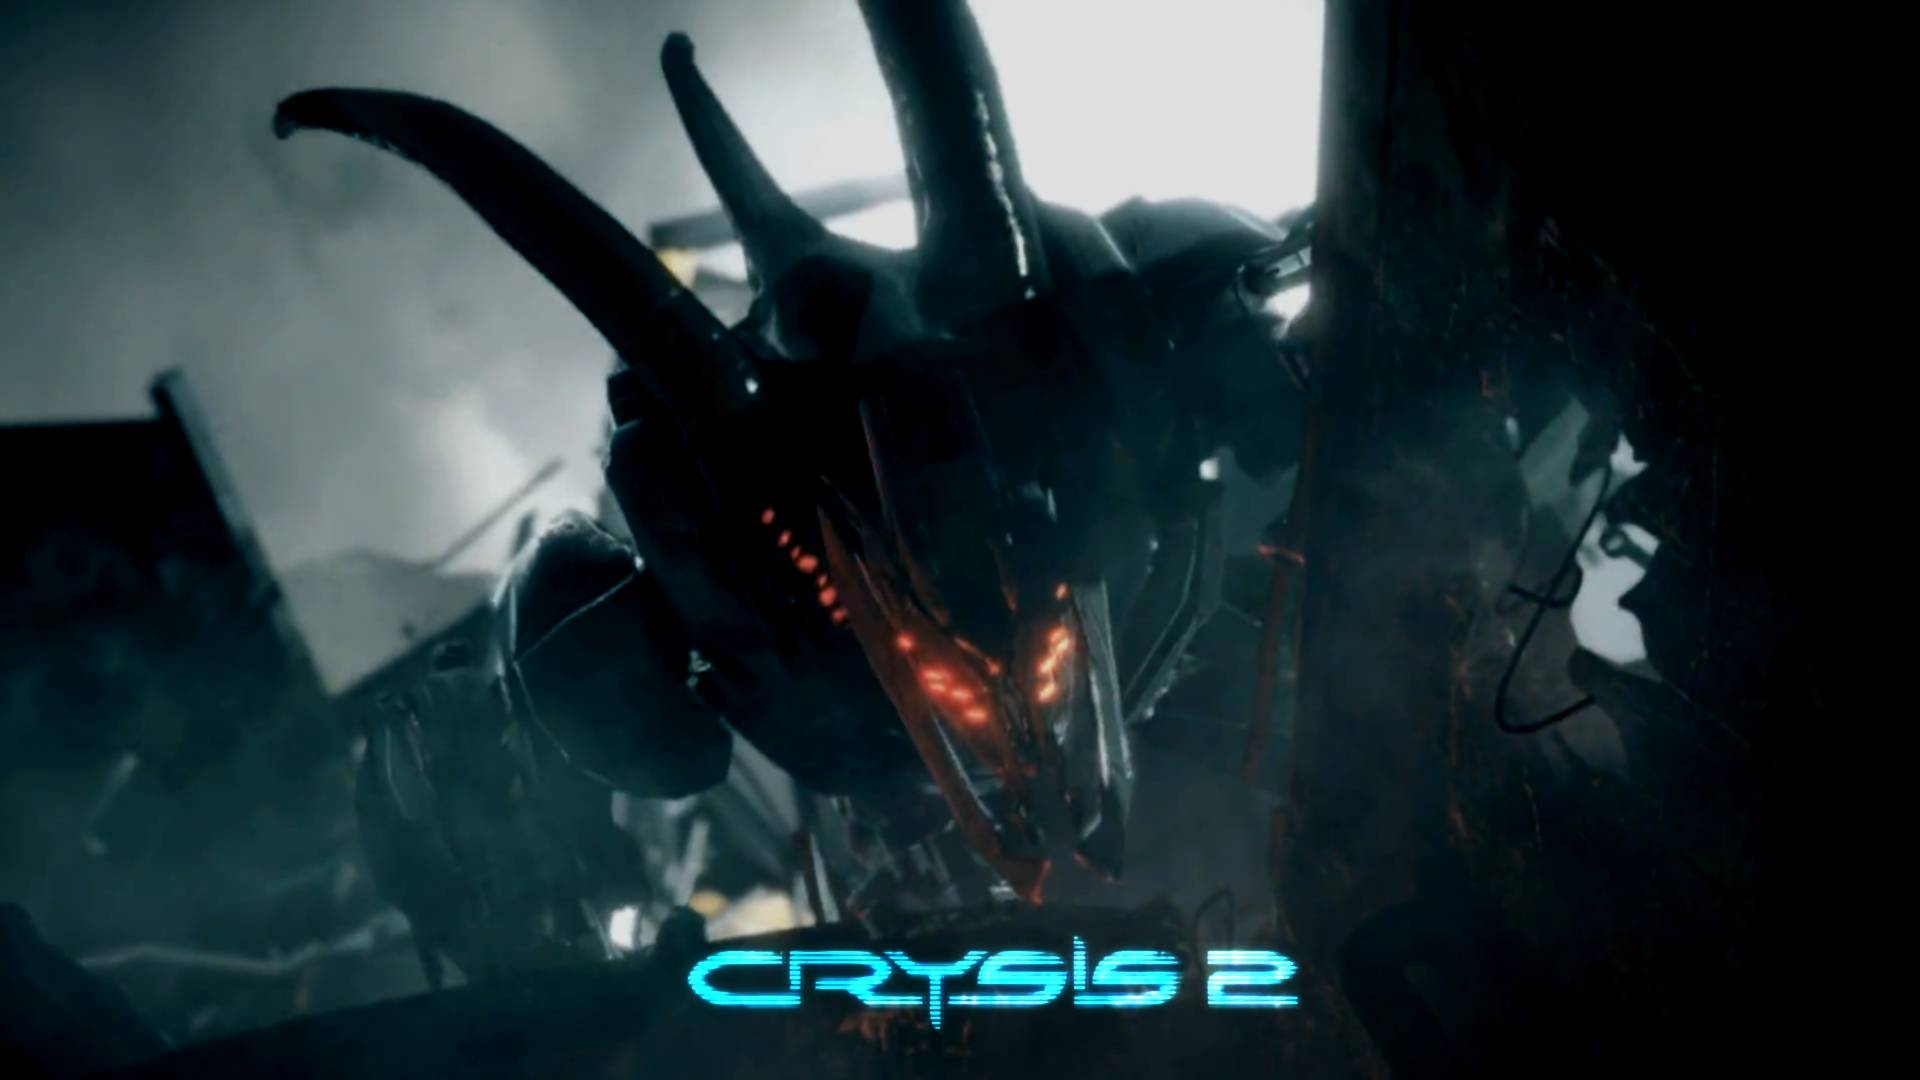 crysis 2 wallpapers in full 1080p hd « video game news, reviews